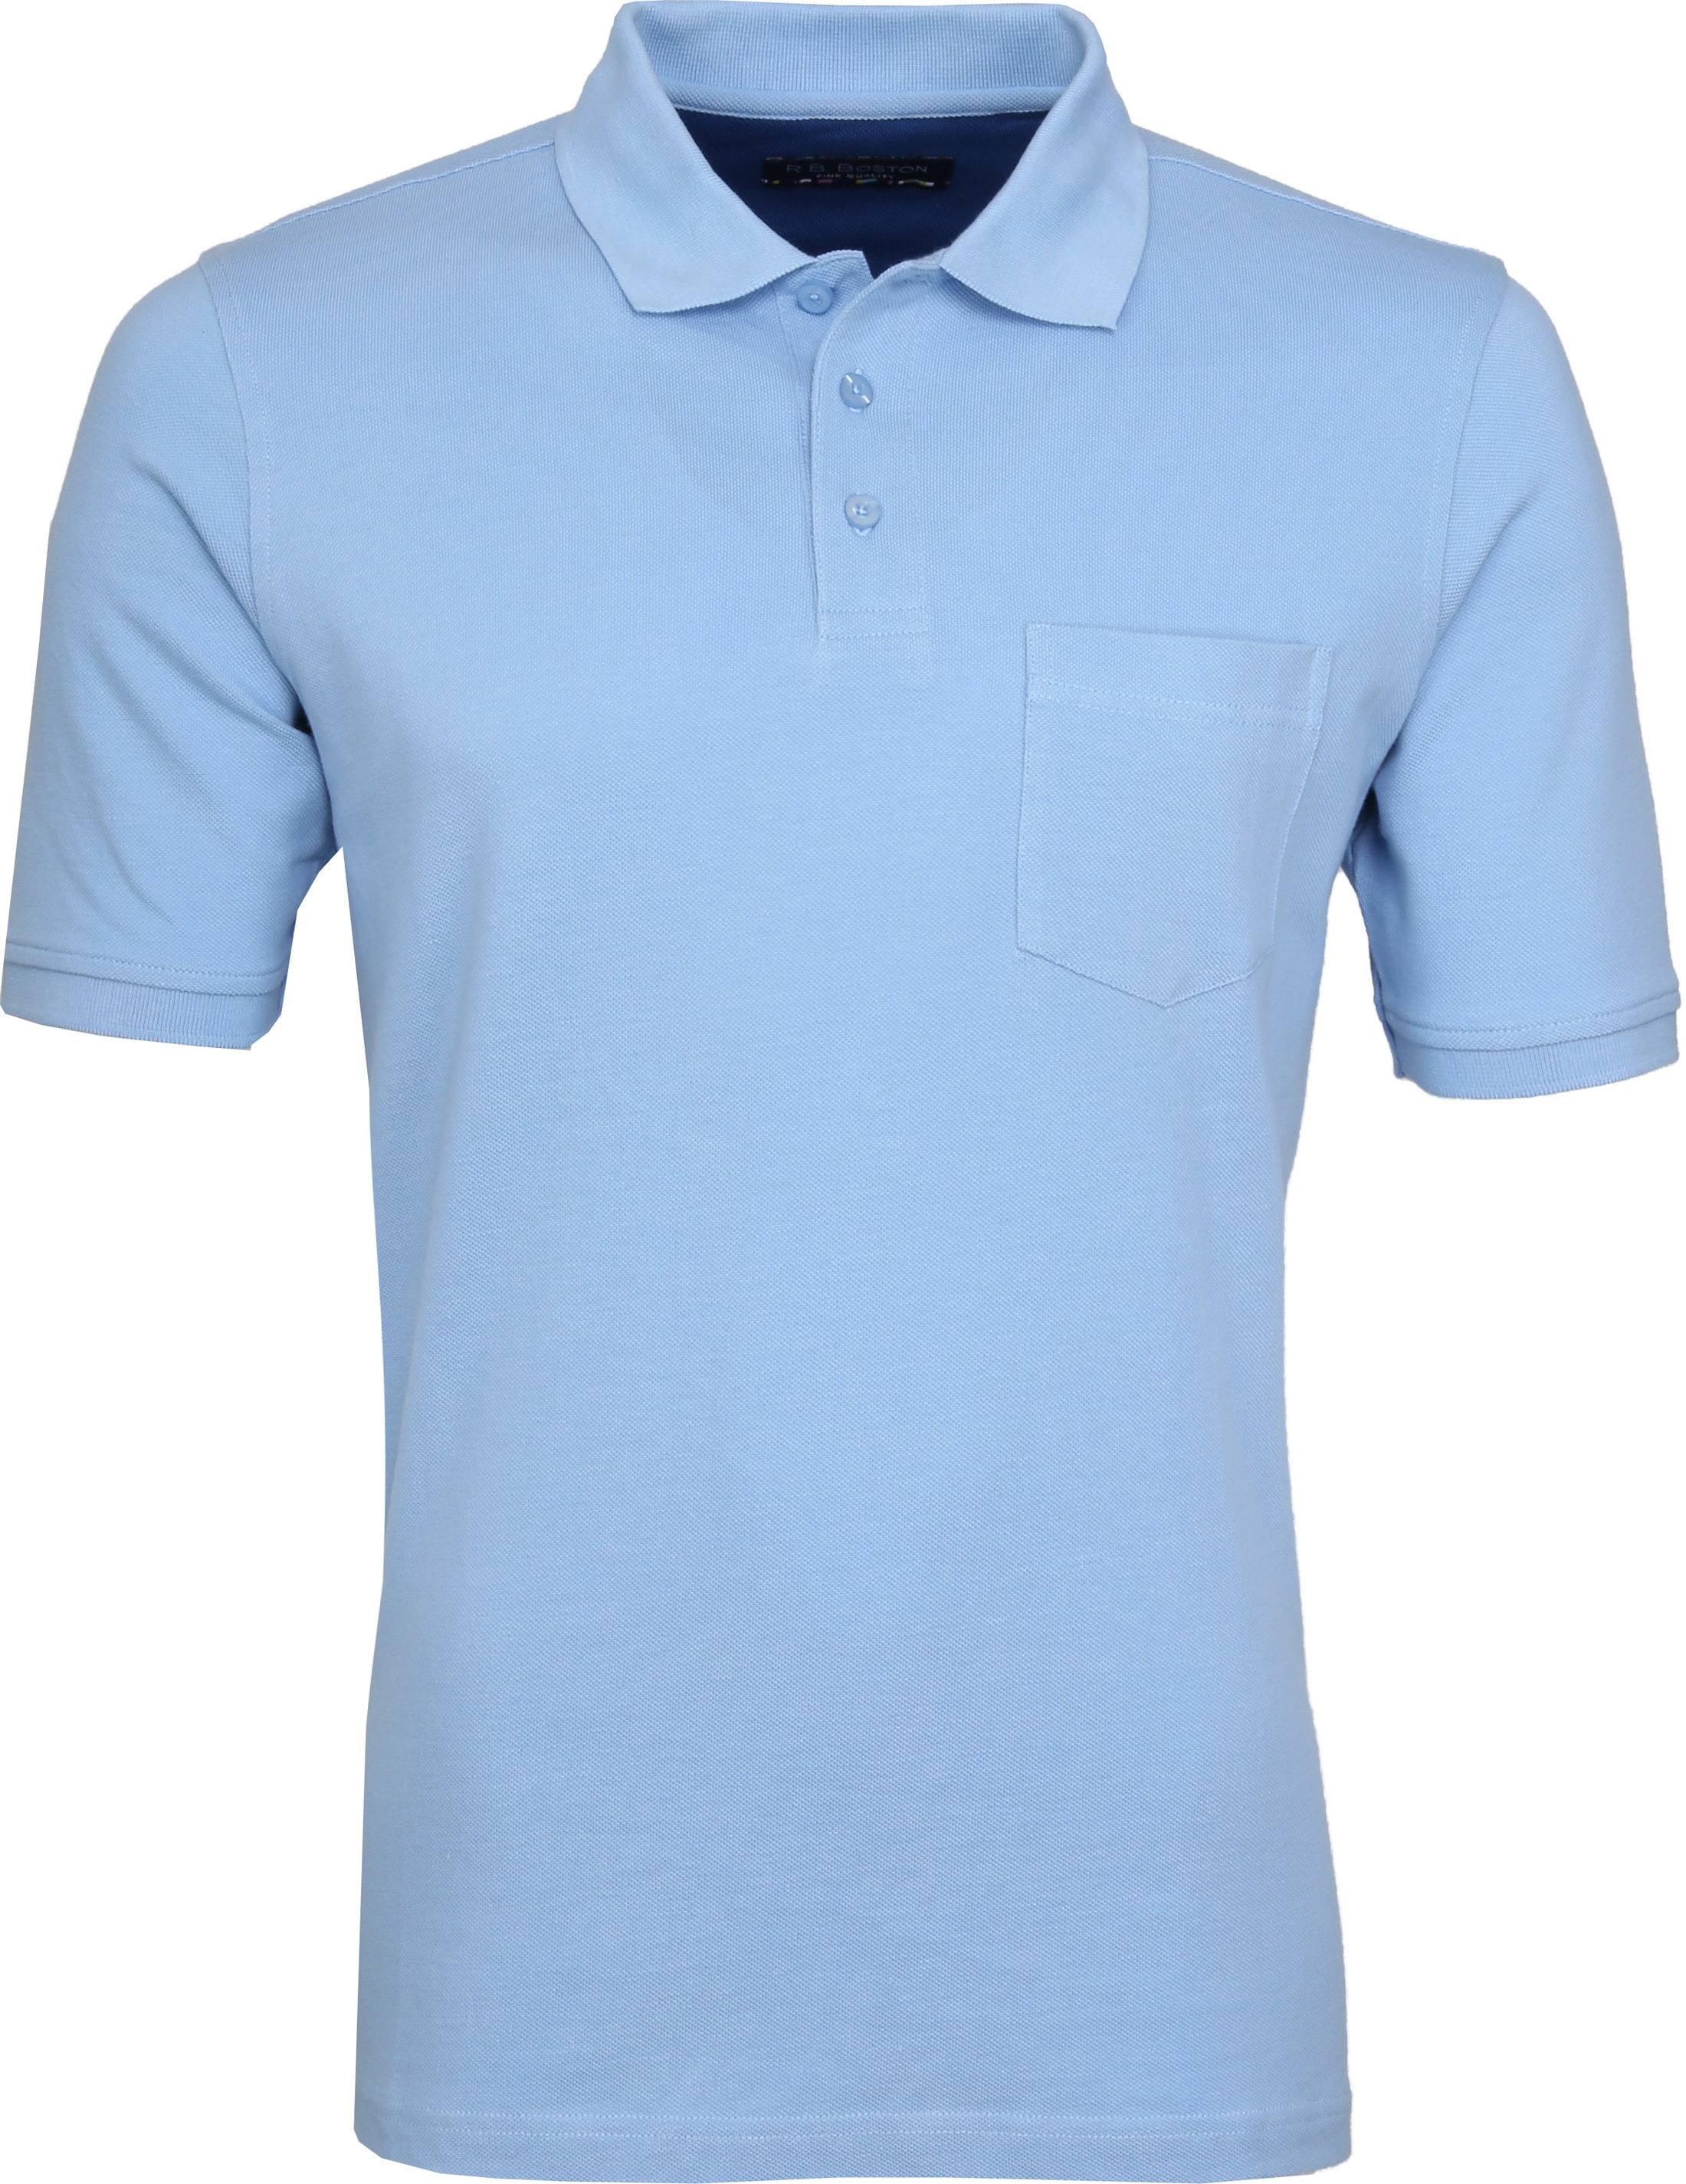 Suitable Poloshirt Boston Hellblau foto 0